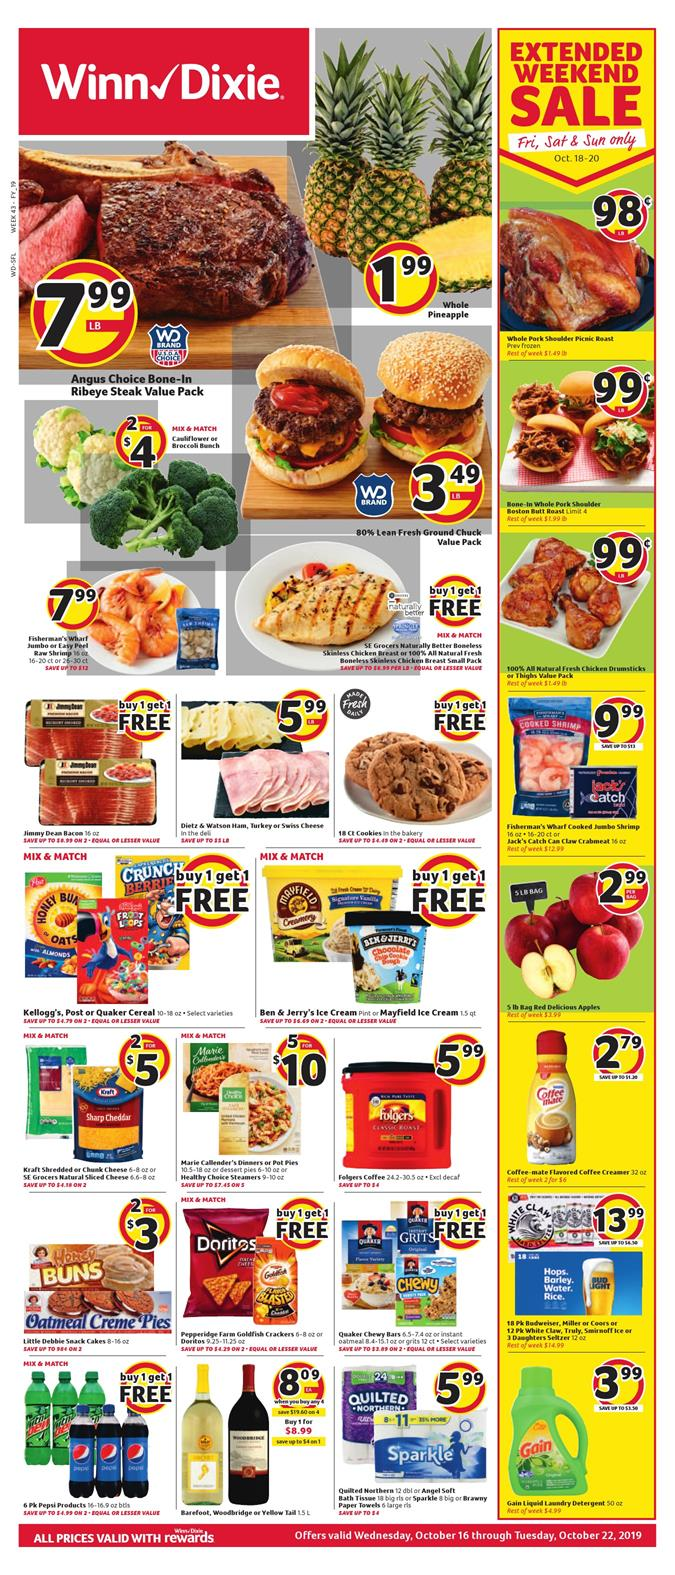 winn dixie weekly ad oct 16 2019